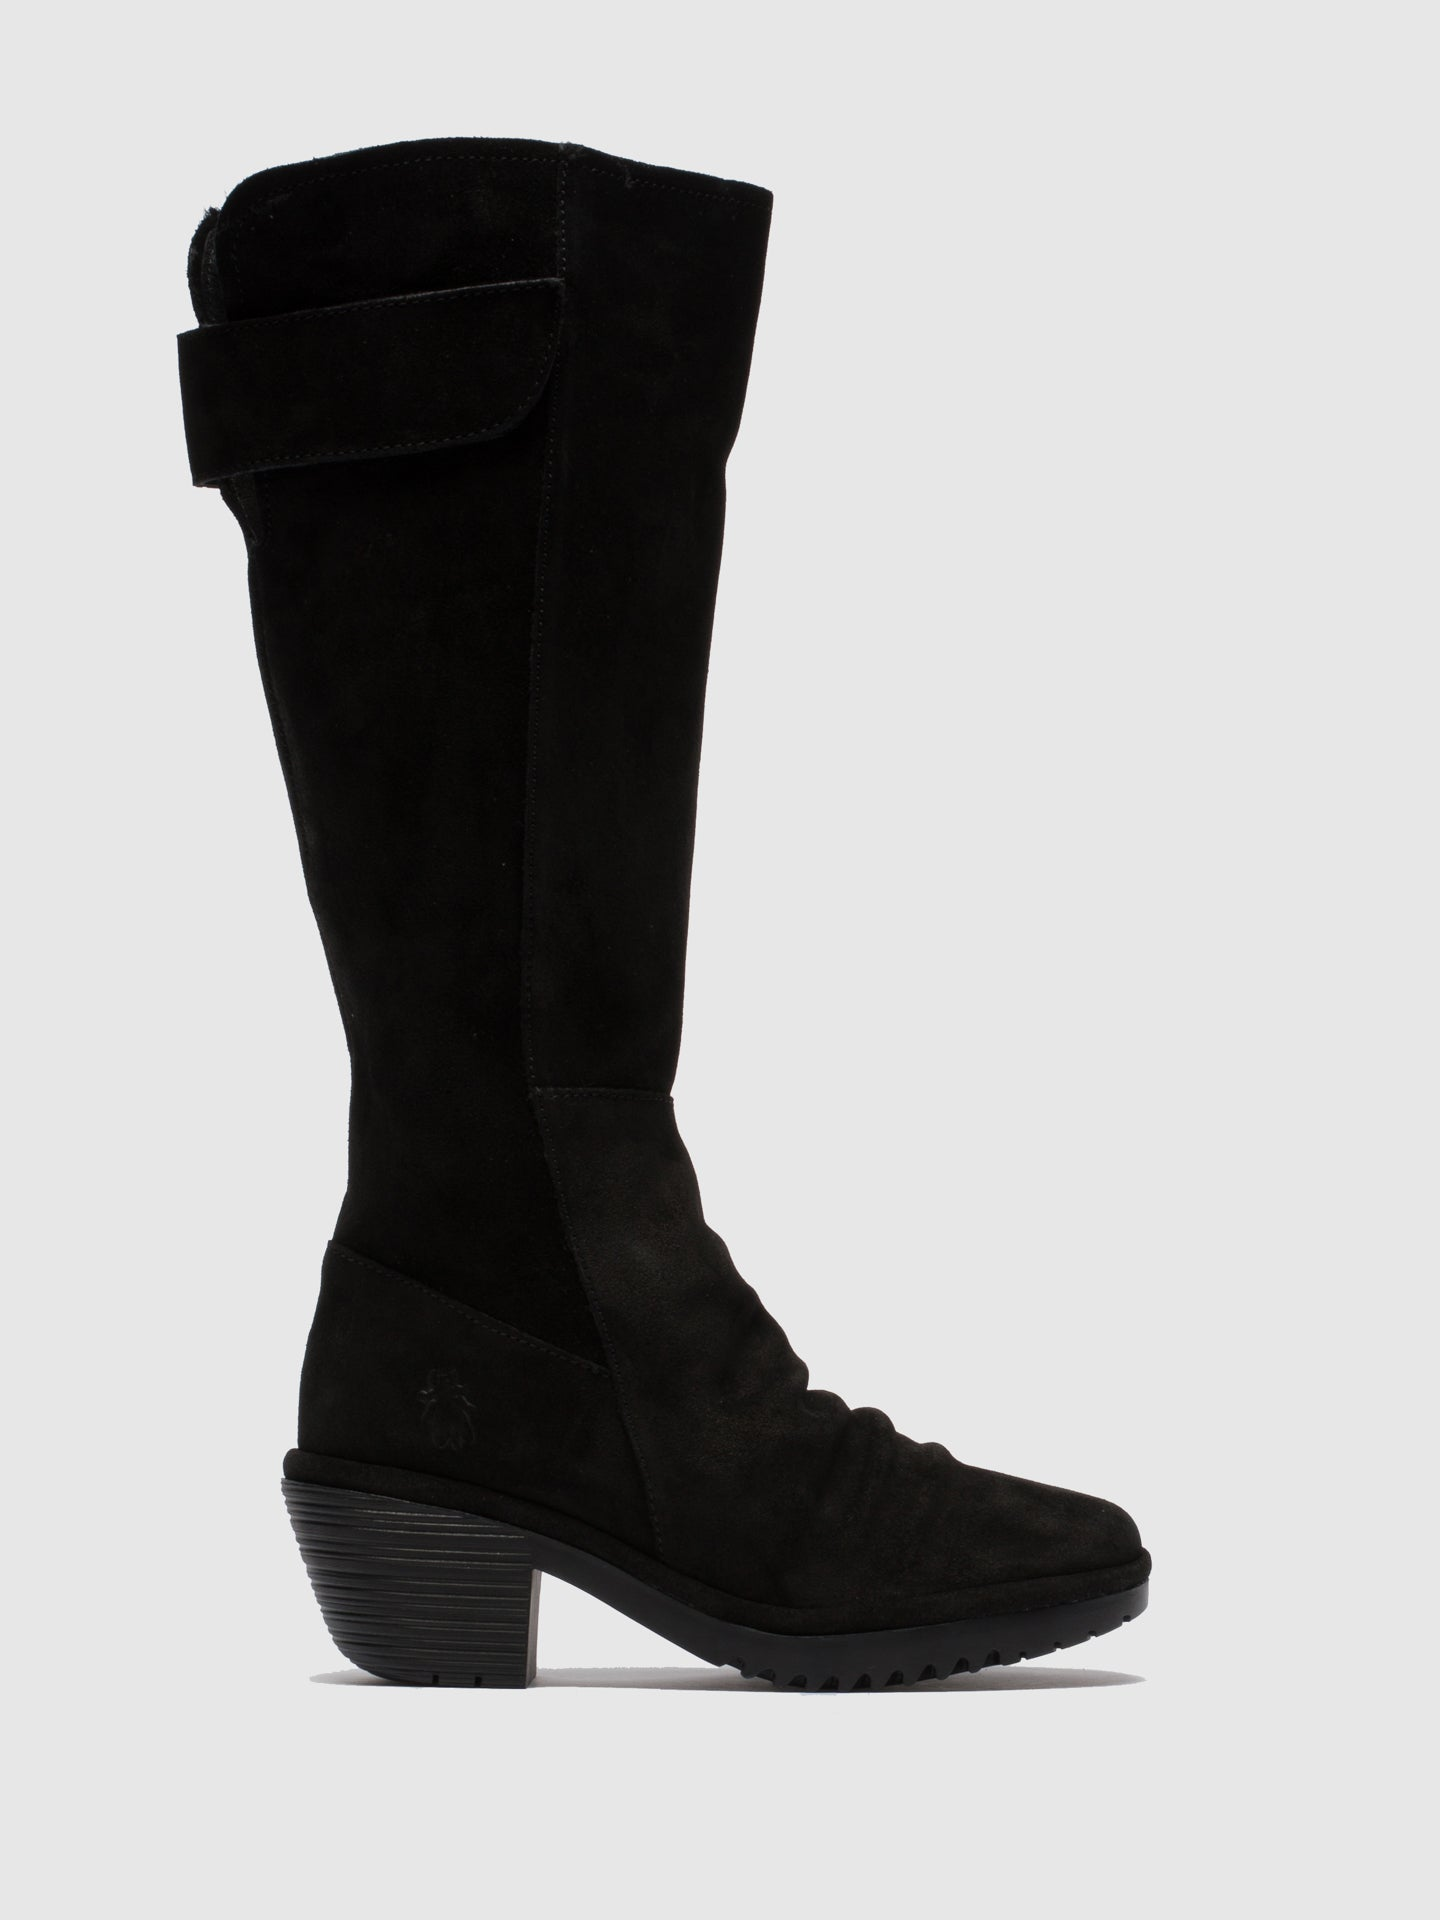 Fly London Black Suede Zip Up Boots